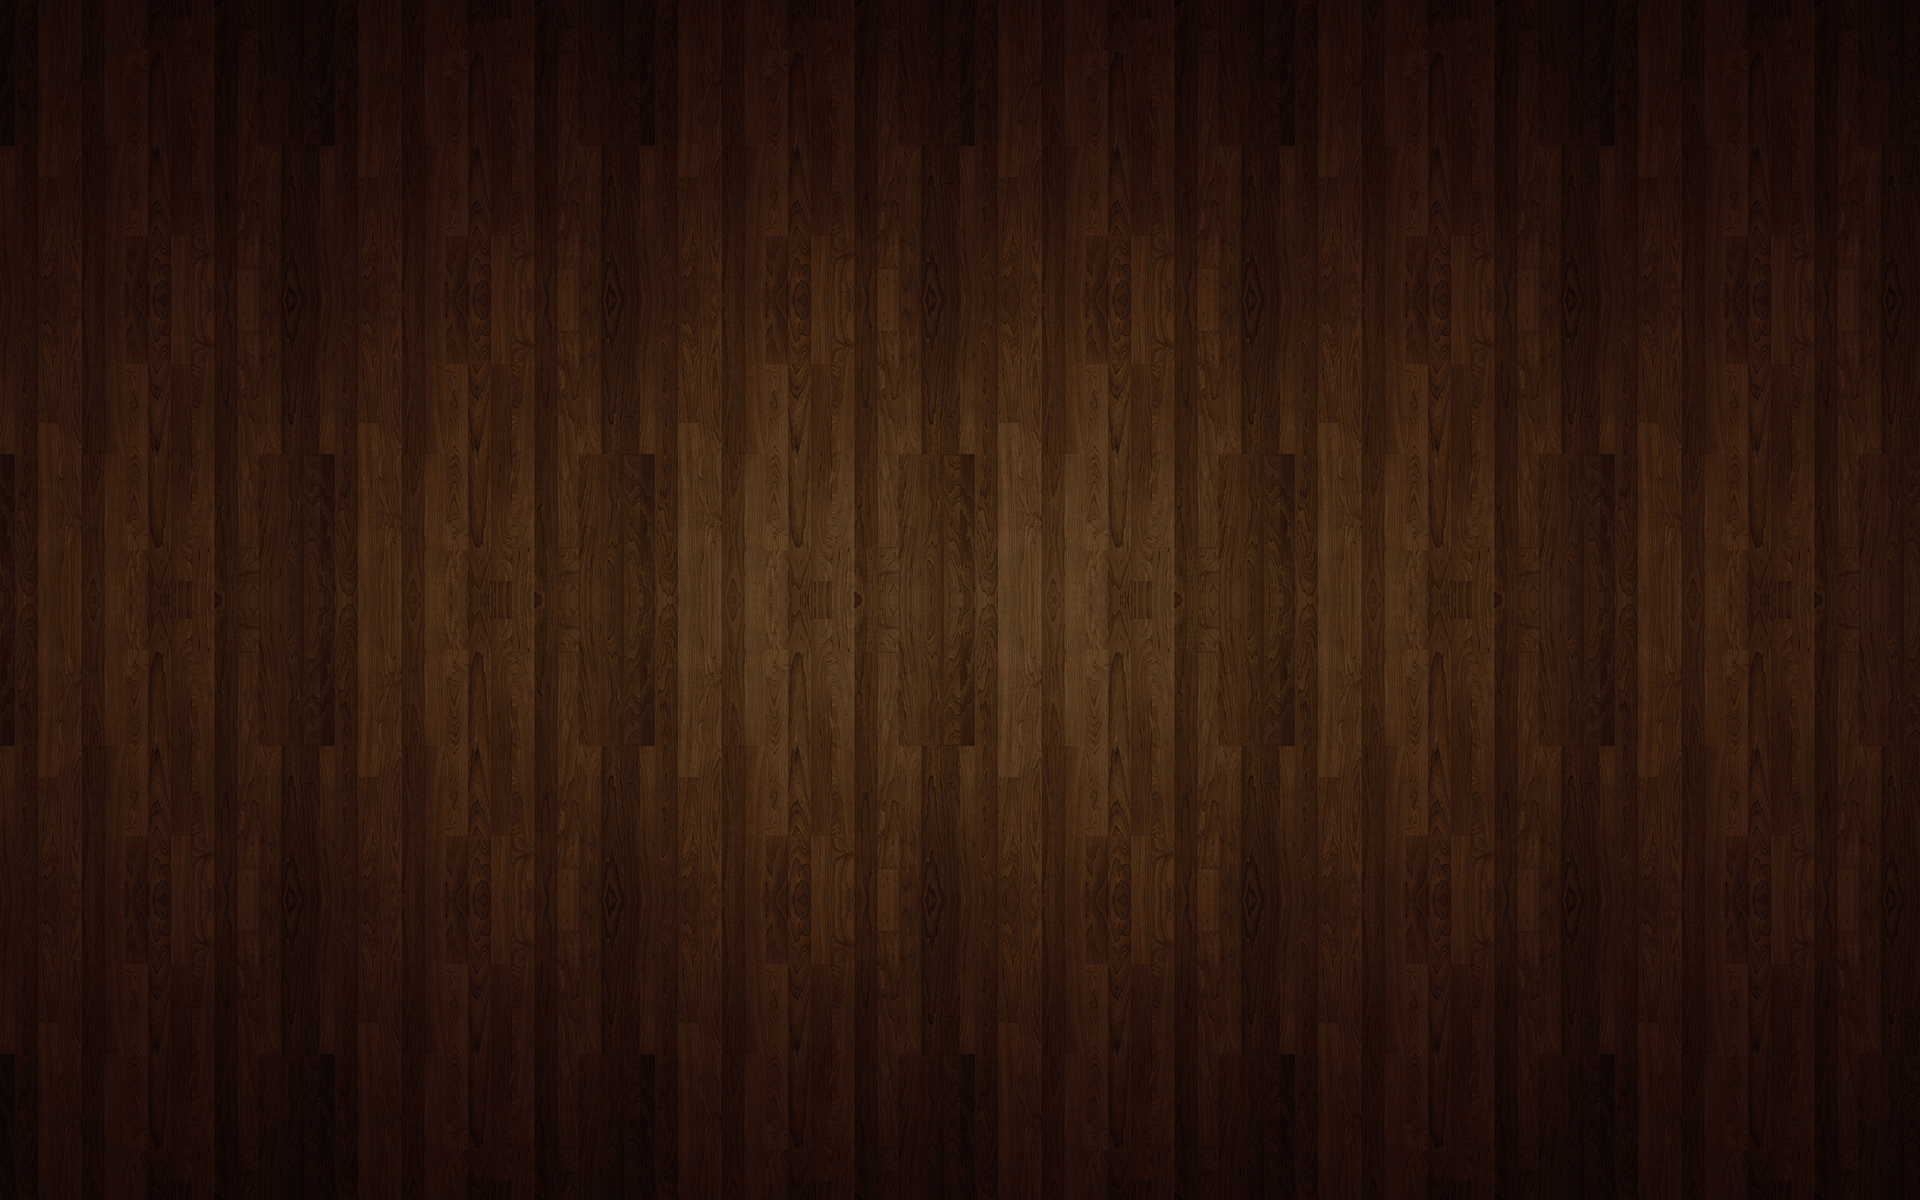 Filter Popular Wood Wooden Dark Room Resolutions wallpapers HD 1920x1200